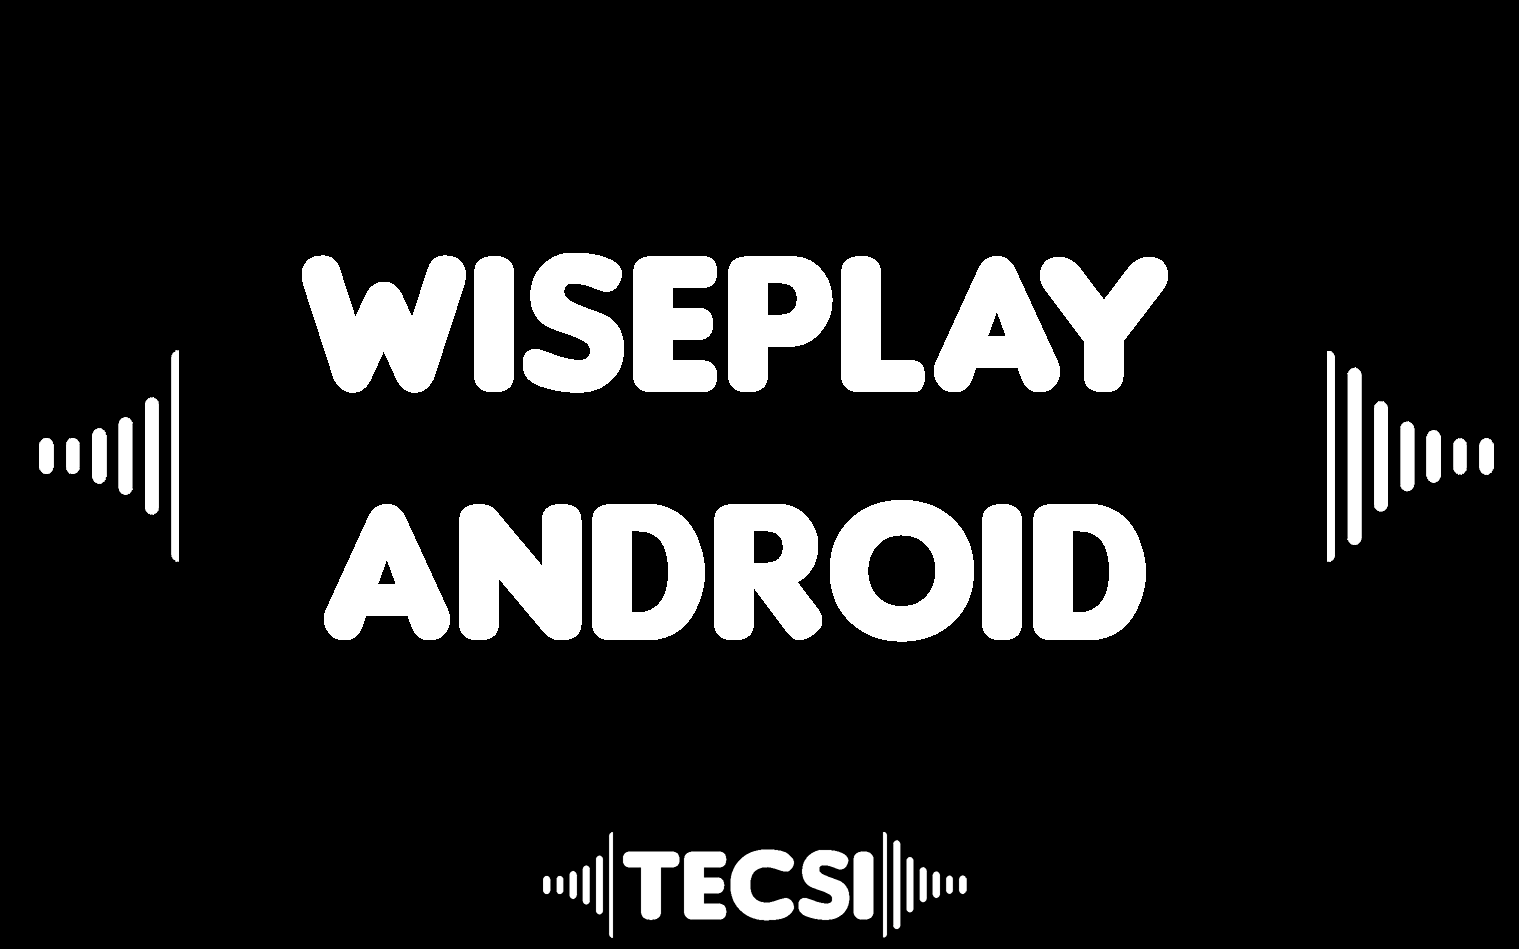 wiseplay android